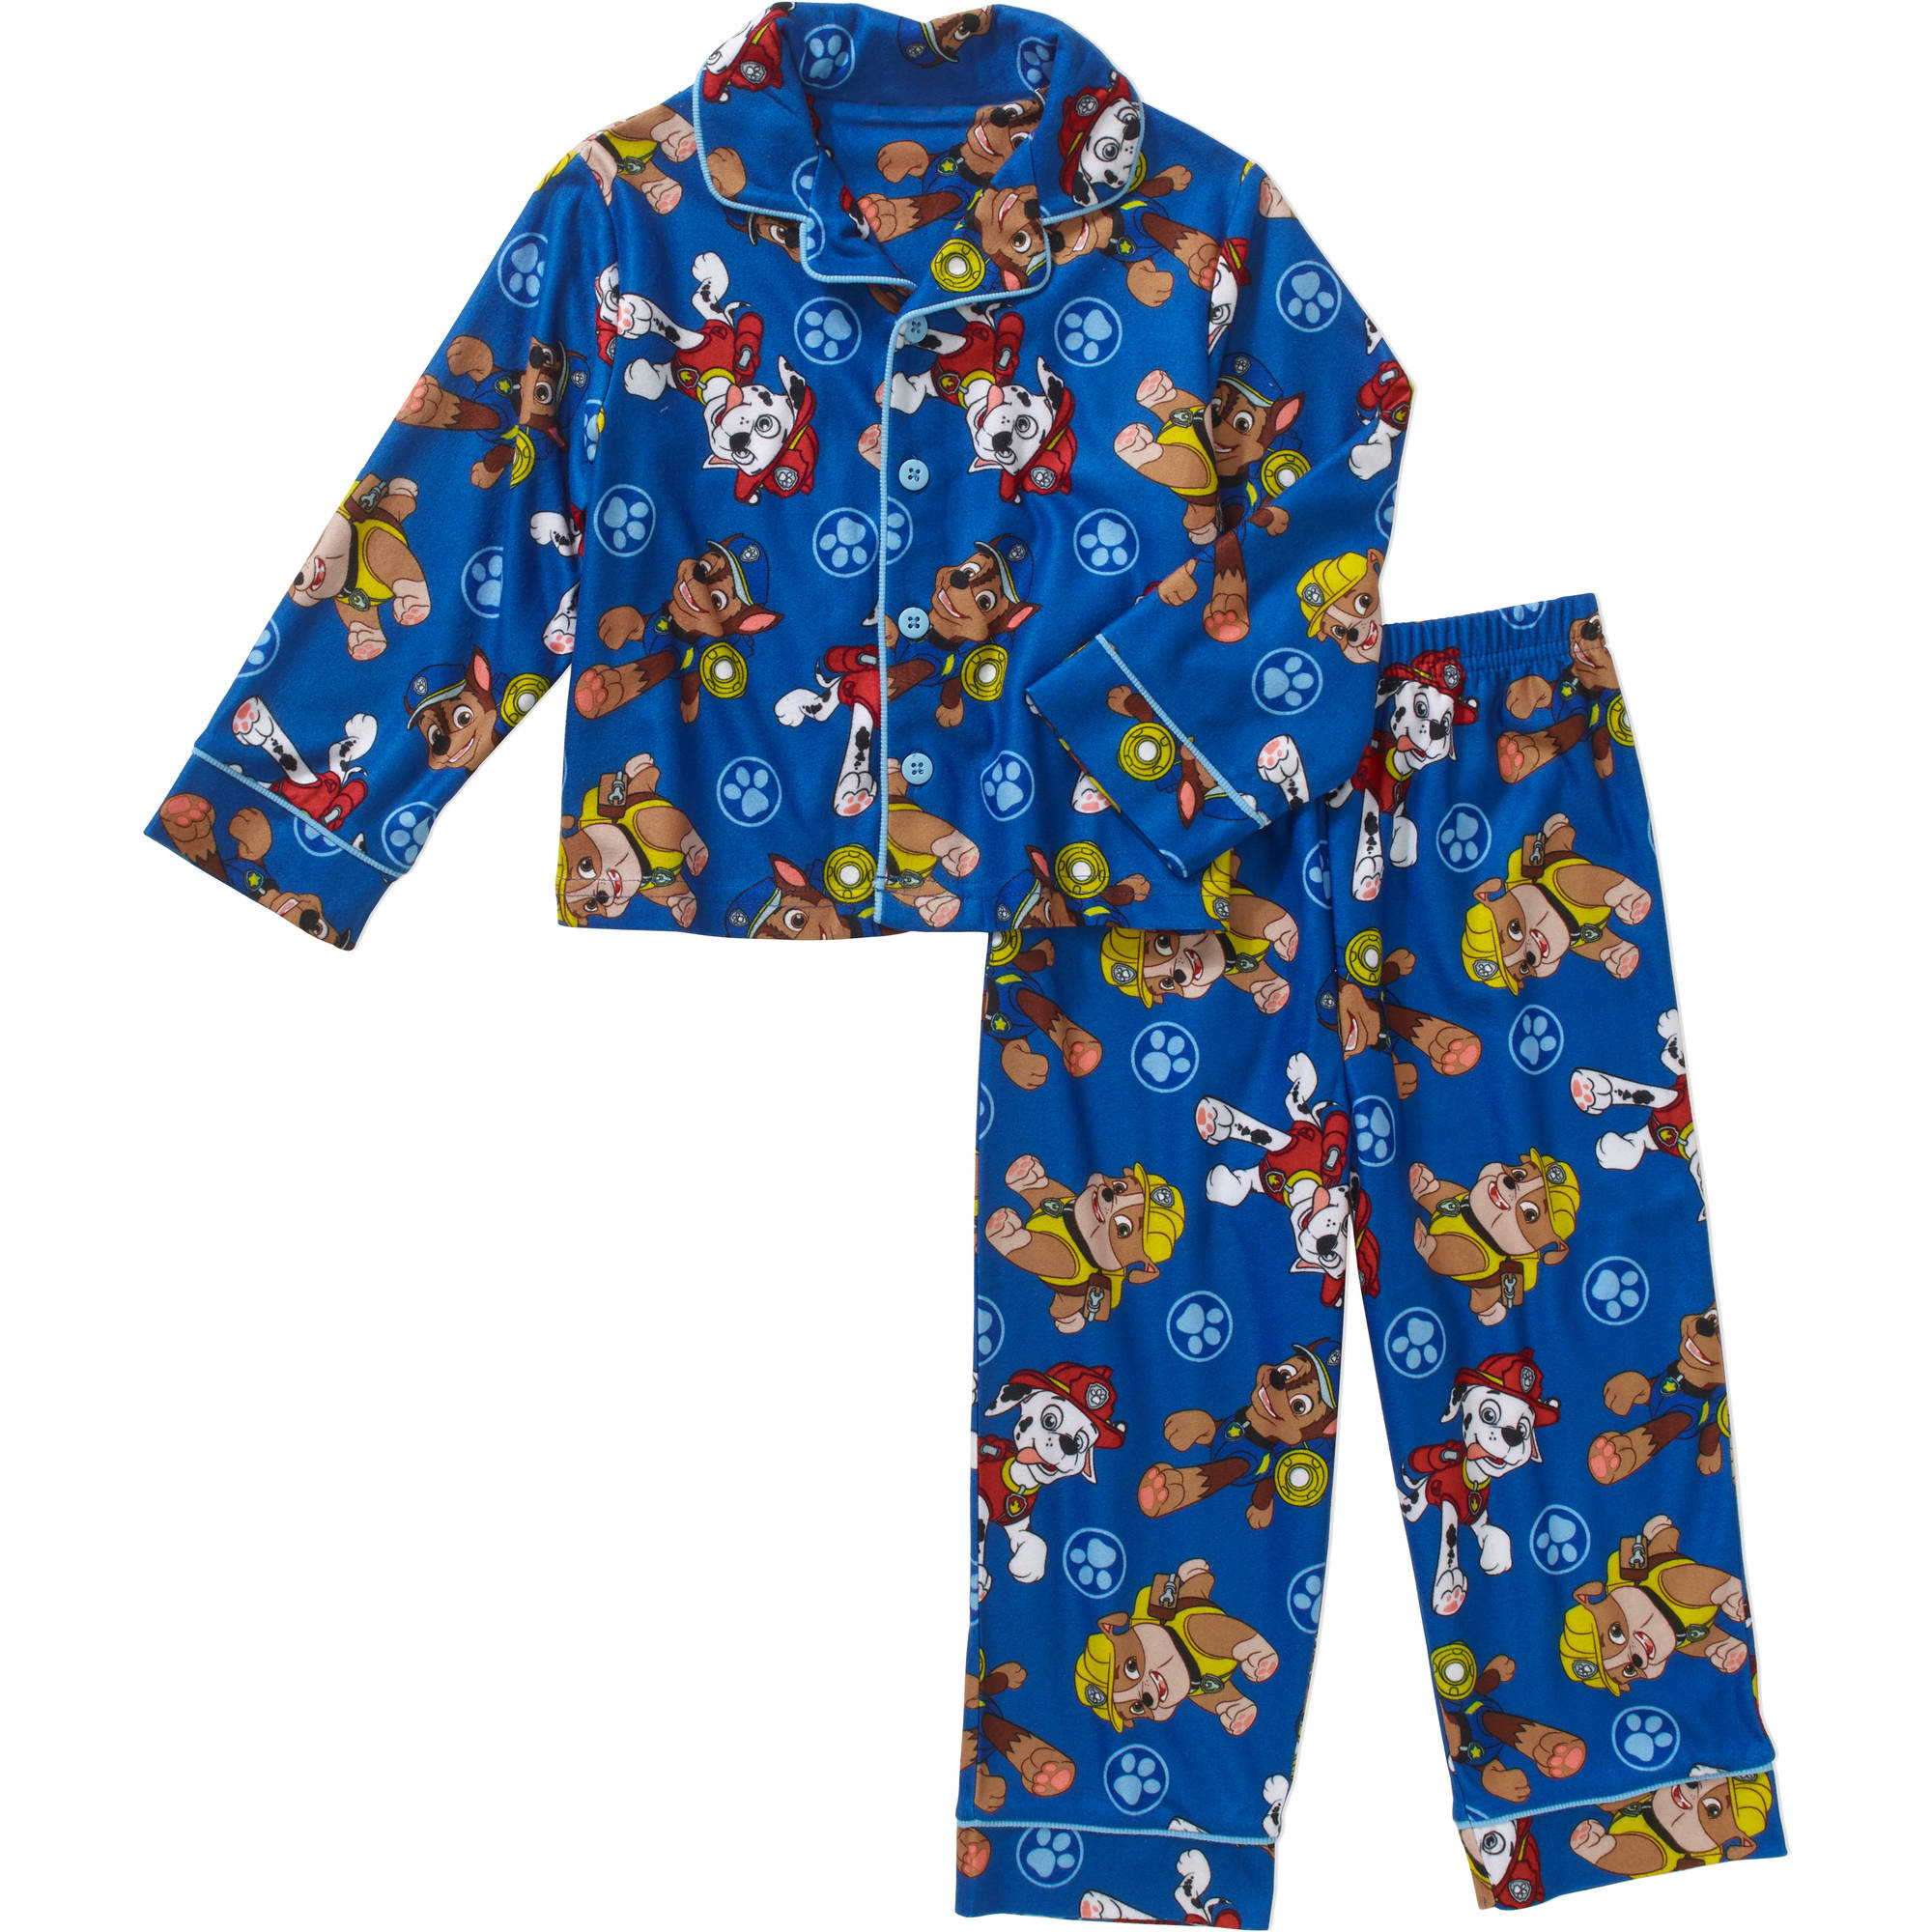 Star Wars Boys 2-Piece Button Front Pajama Sleepwear Set Size 8